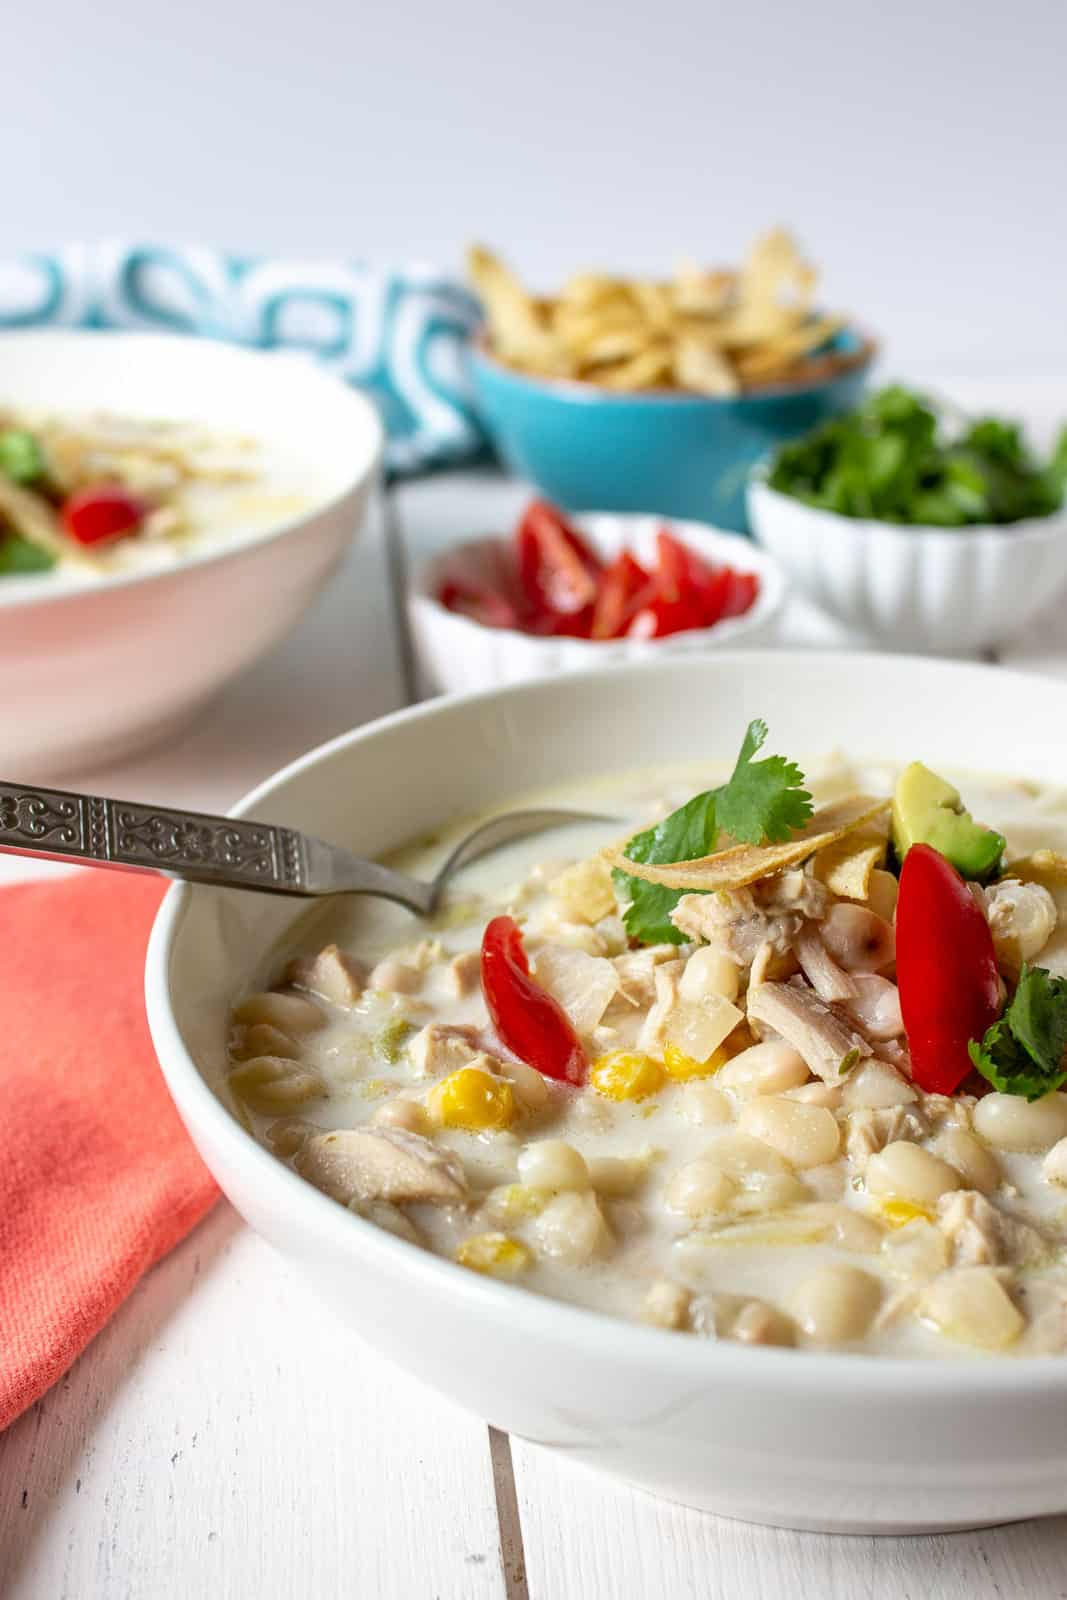 A bowl filled with white beans in a creamy broth and topped with fresh tomatoes and cilantro.